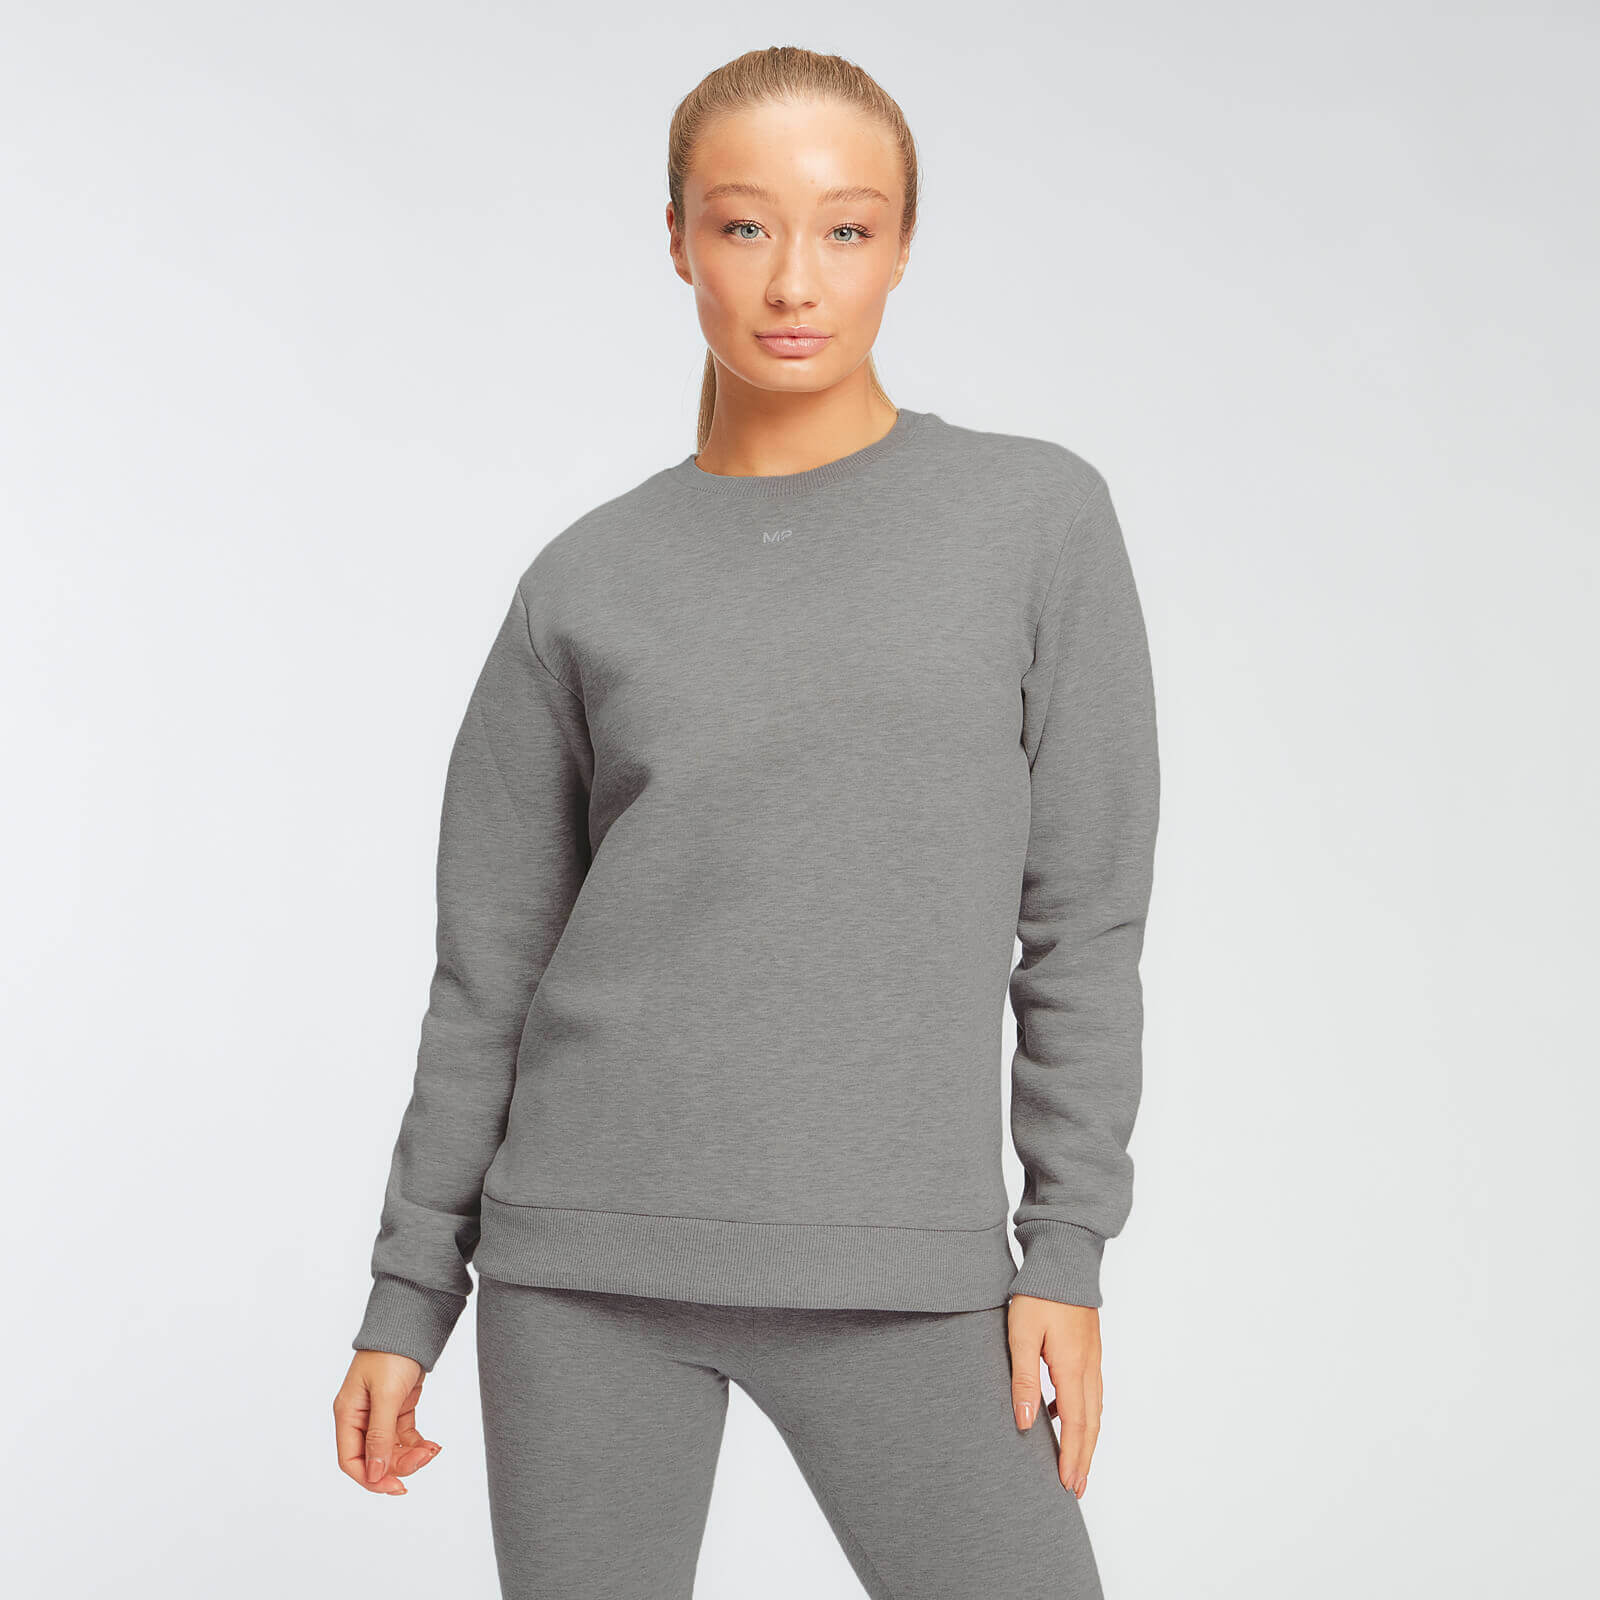 Sweat MP Essentials pour femmes – Gris chiné - XL